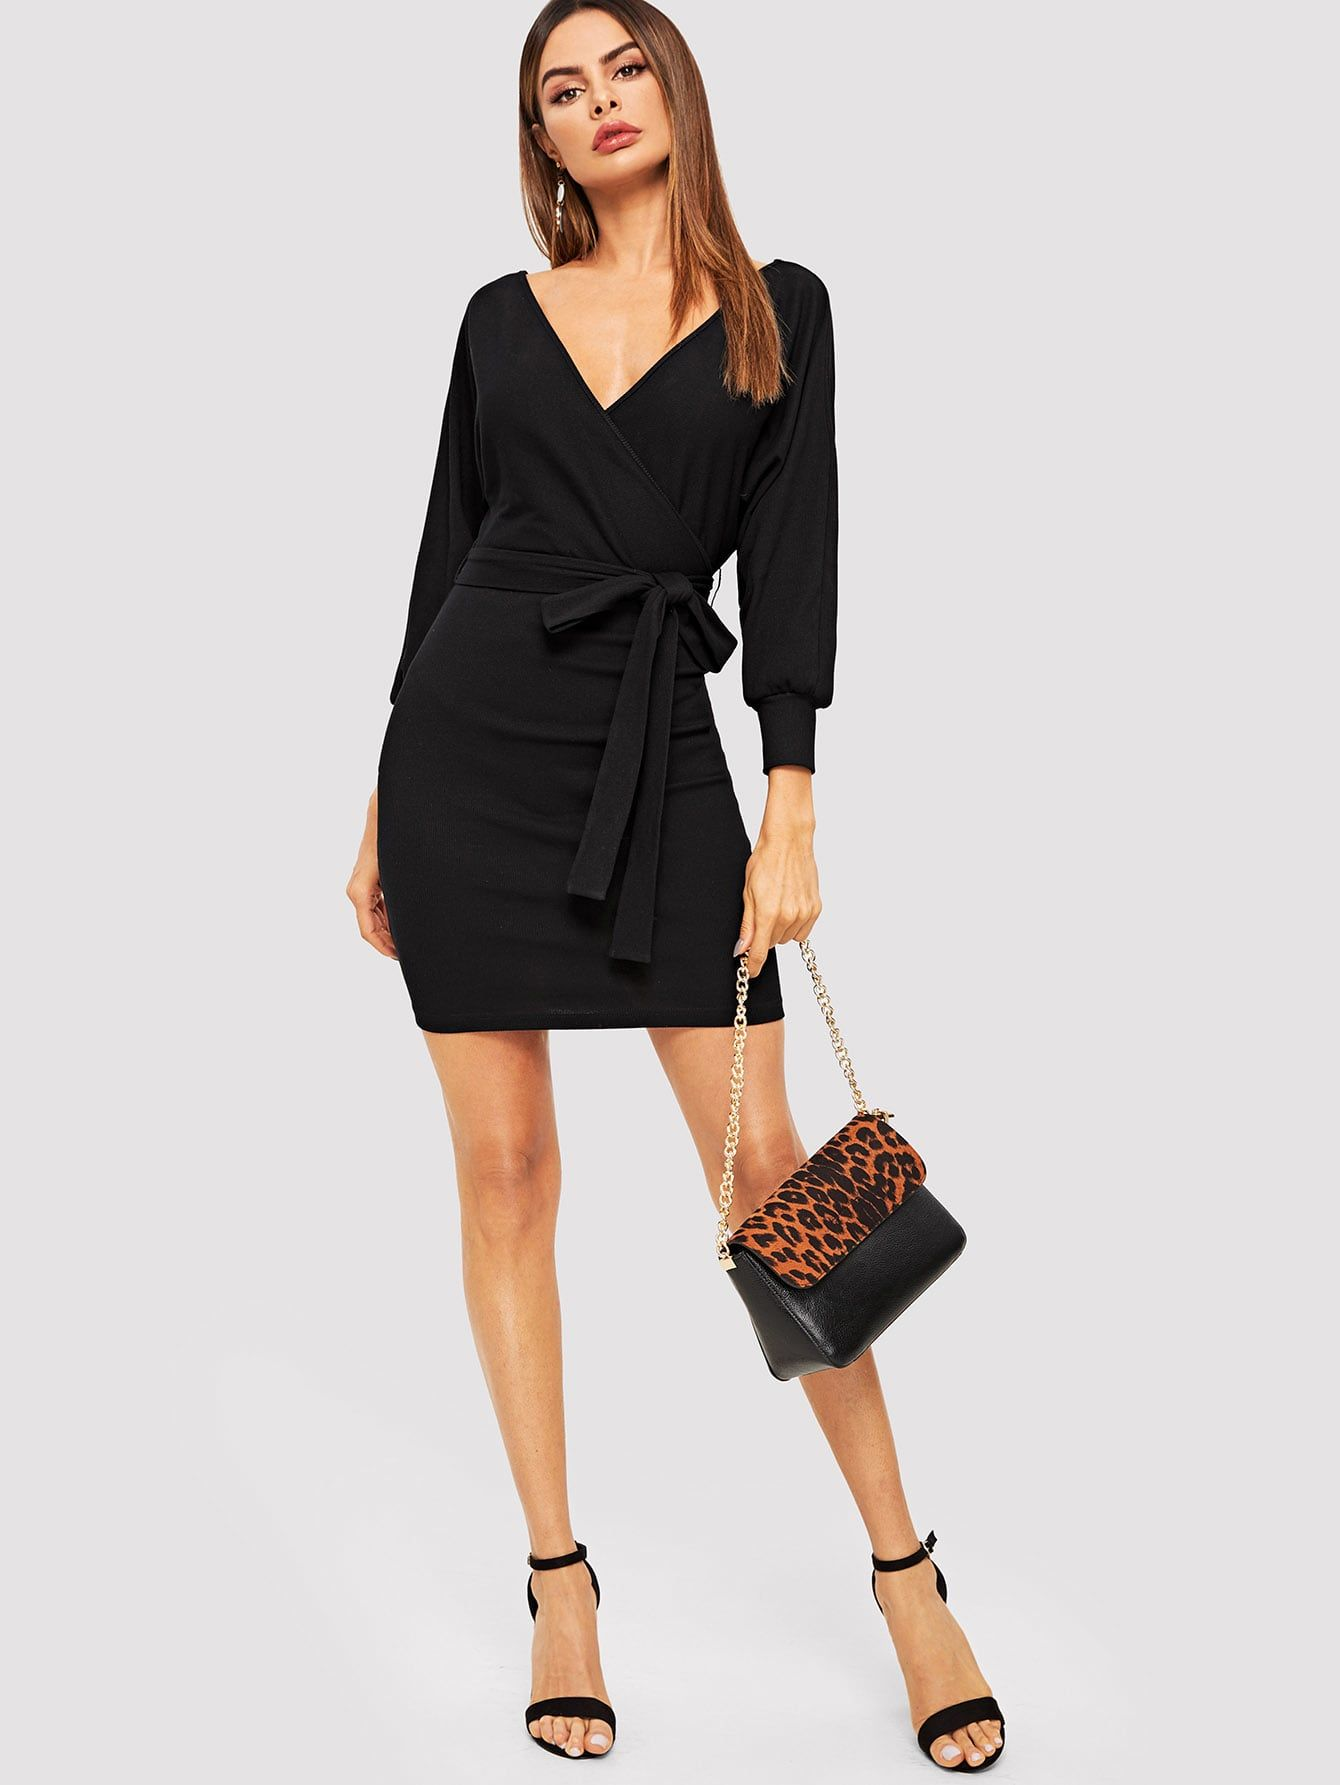 c212bb75c8d9 Elegant Wrap and Backless and Belted and Rib-Knit Plain Bodycon V Neck Long  Sleeve Natural Black Short Length Batwing Sleeve Self Belted Wrap Dress